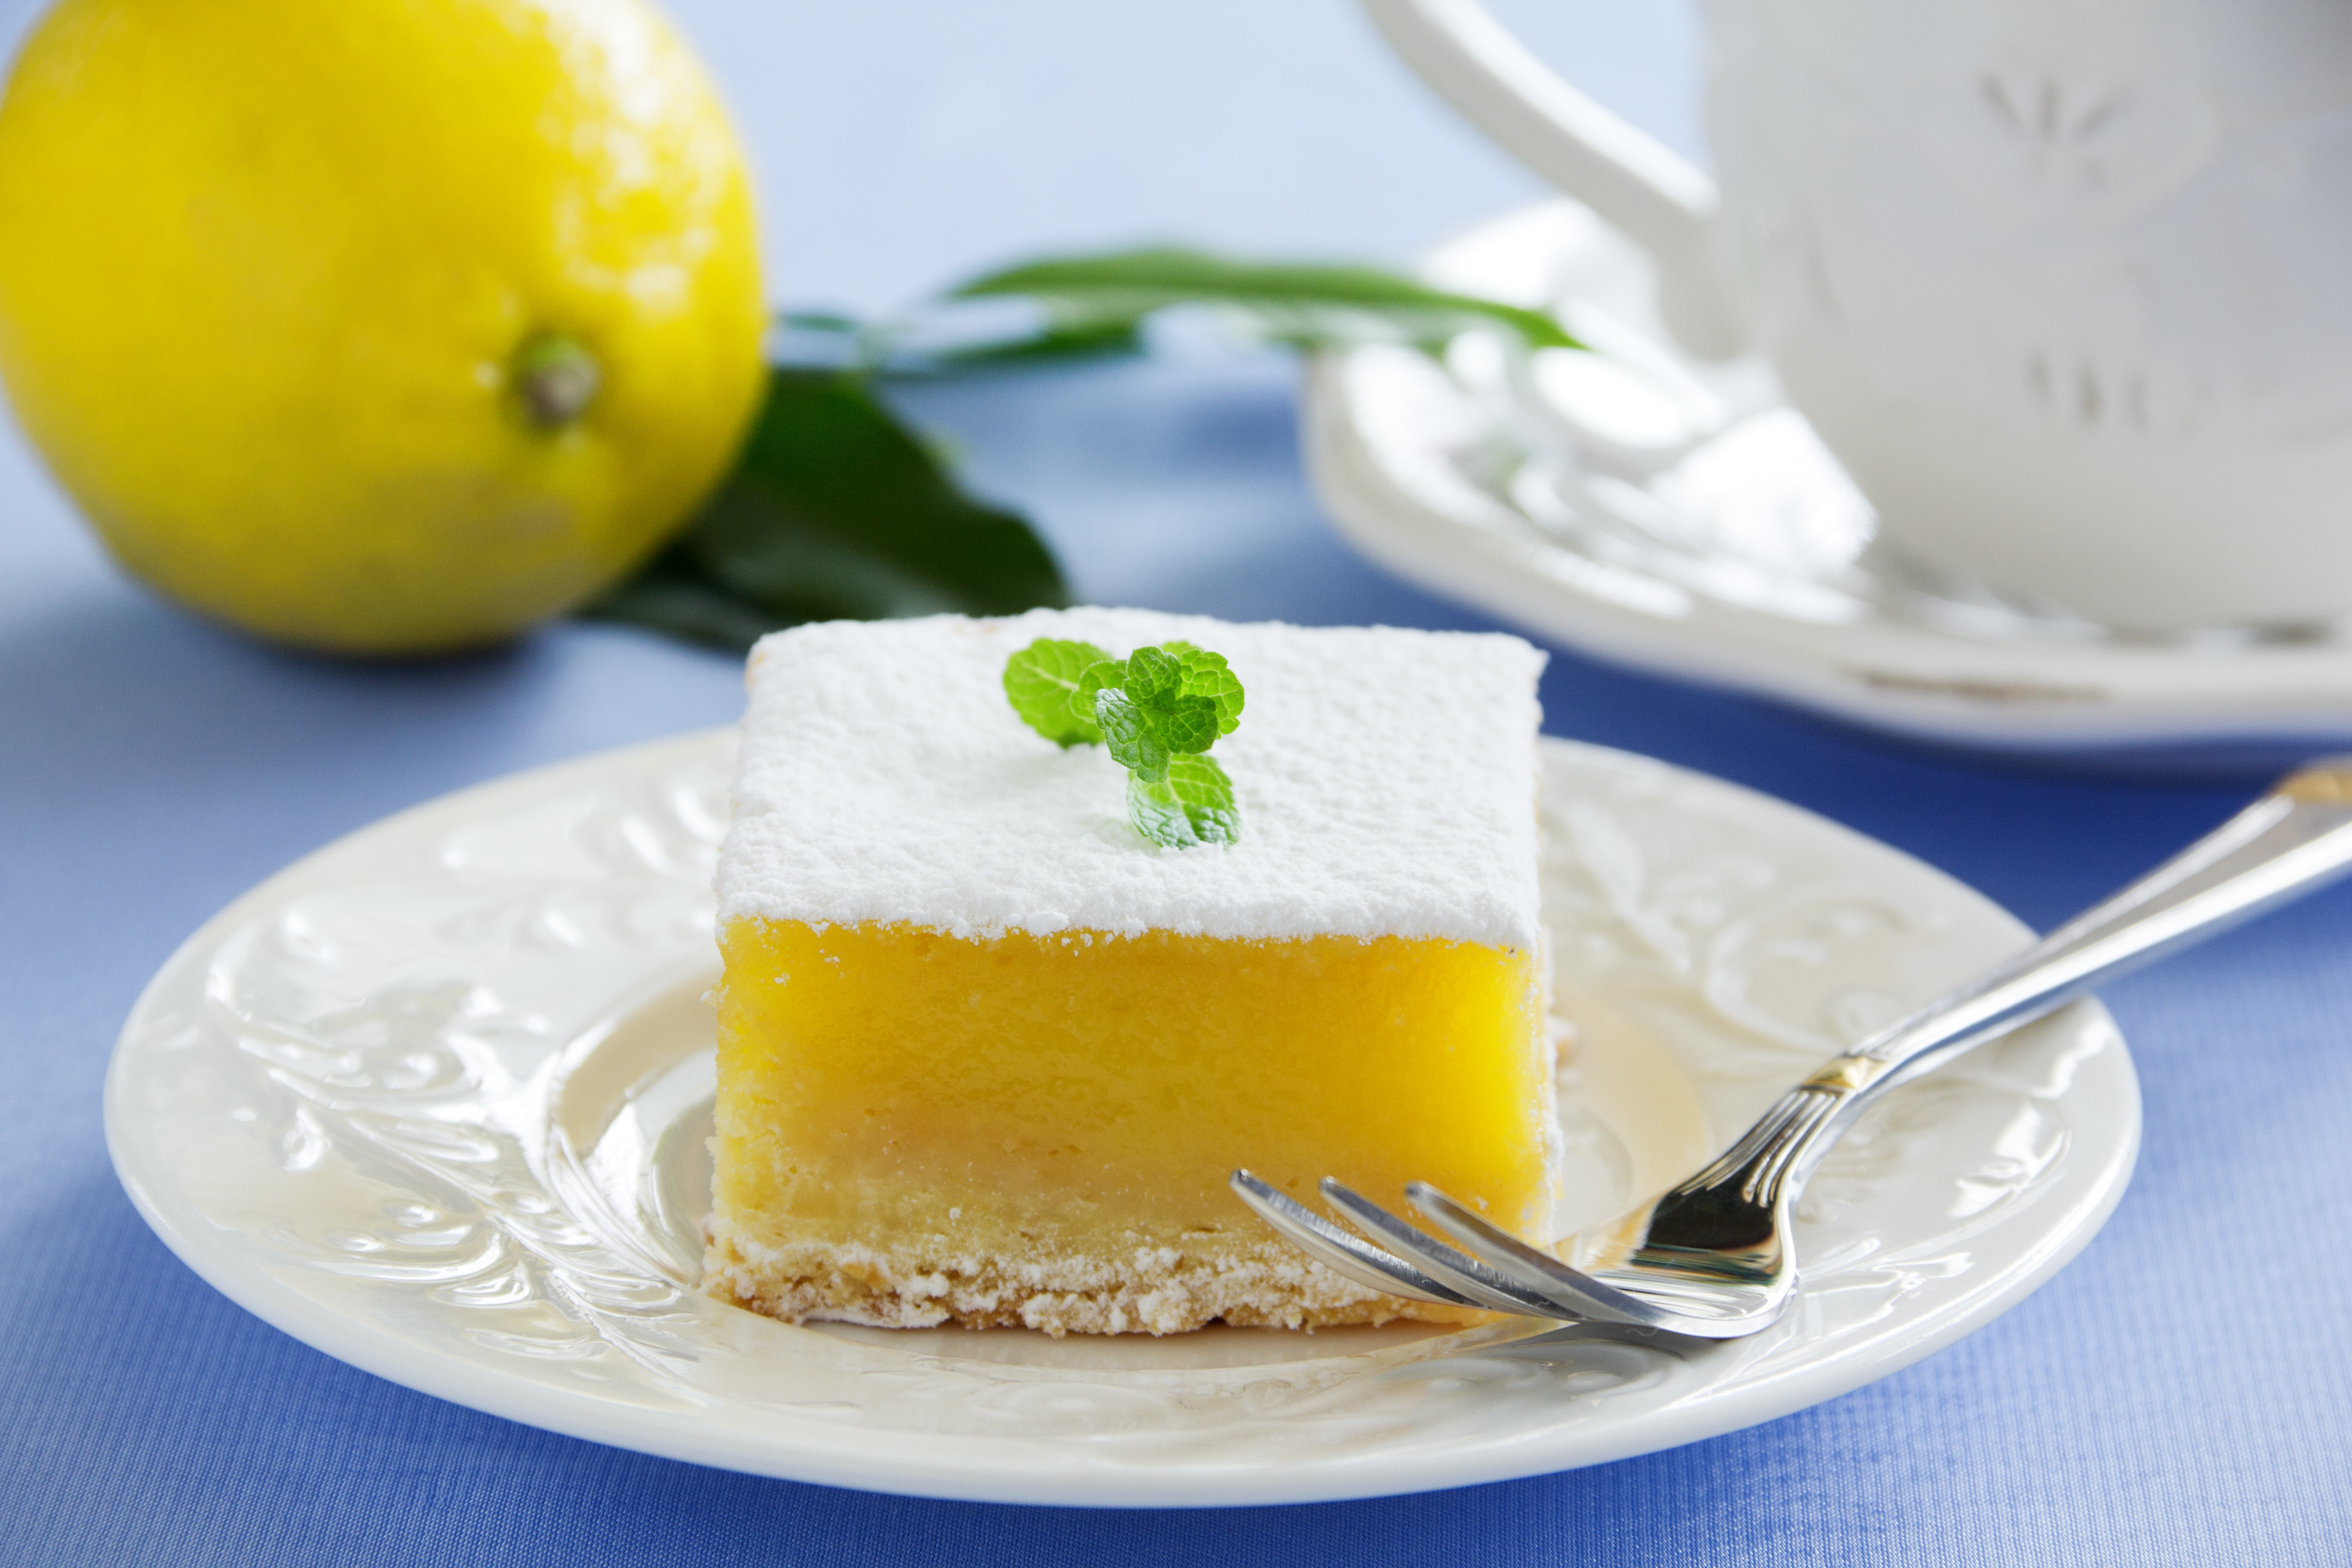 Lemon Cloud Dessert or dream bar is a sweet treat for Easter